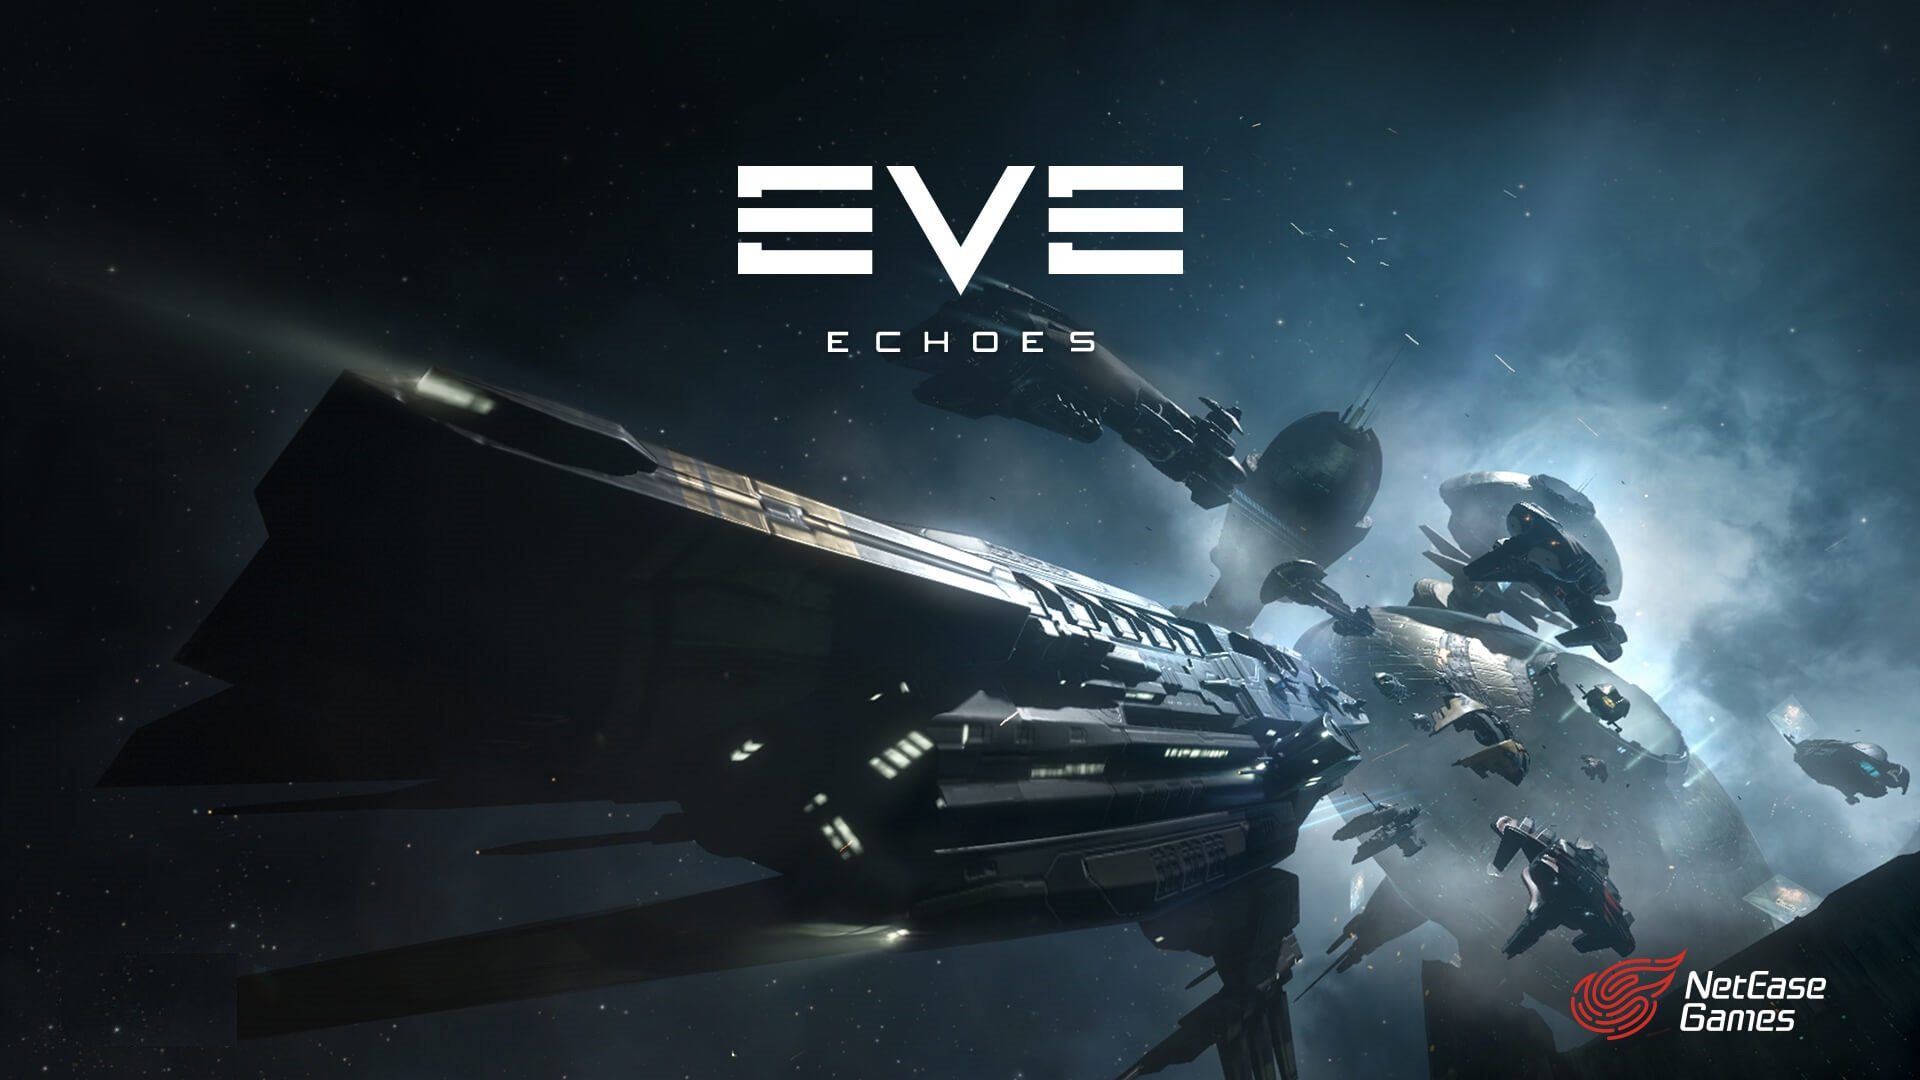 EVE Echoes for PC